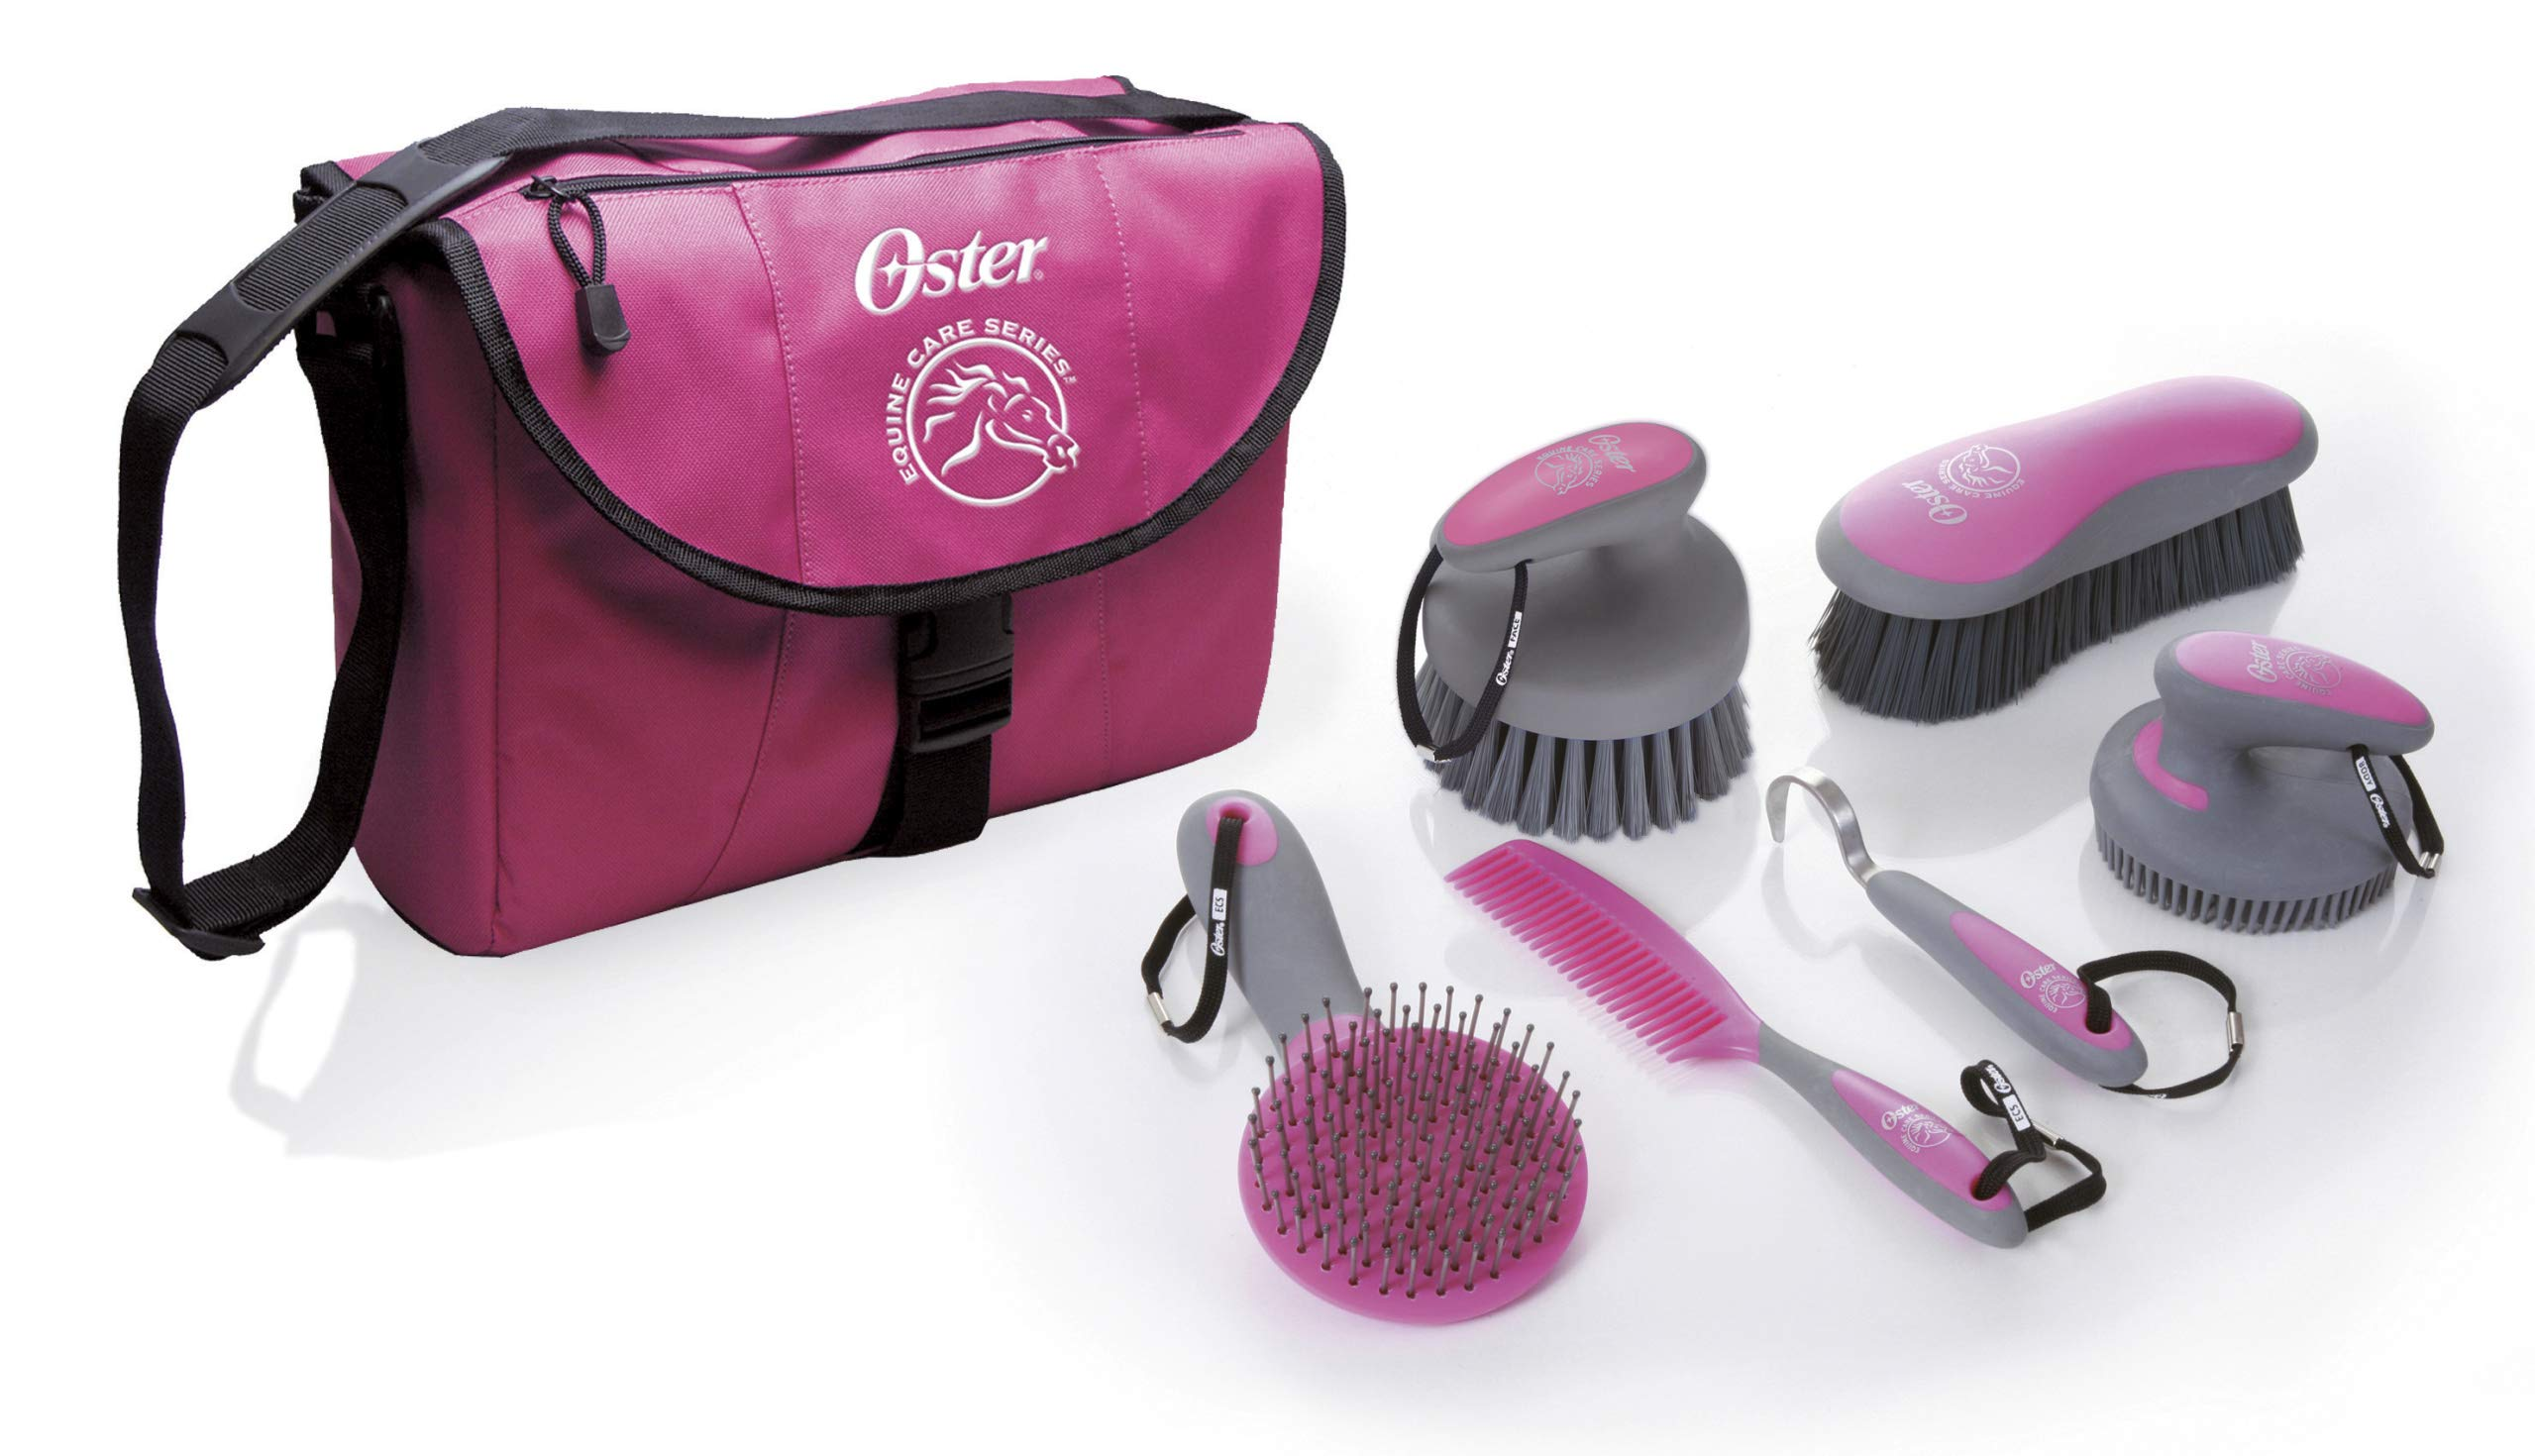 Oster Equine Care Series 7-Piece Grooming Kit (B000HHO97G) Amazon Price History, Amazon Price Tracker